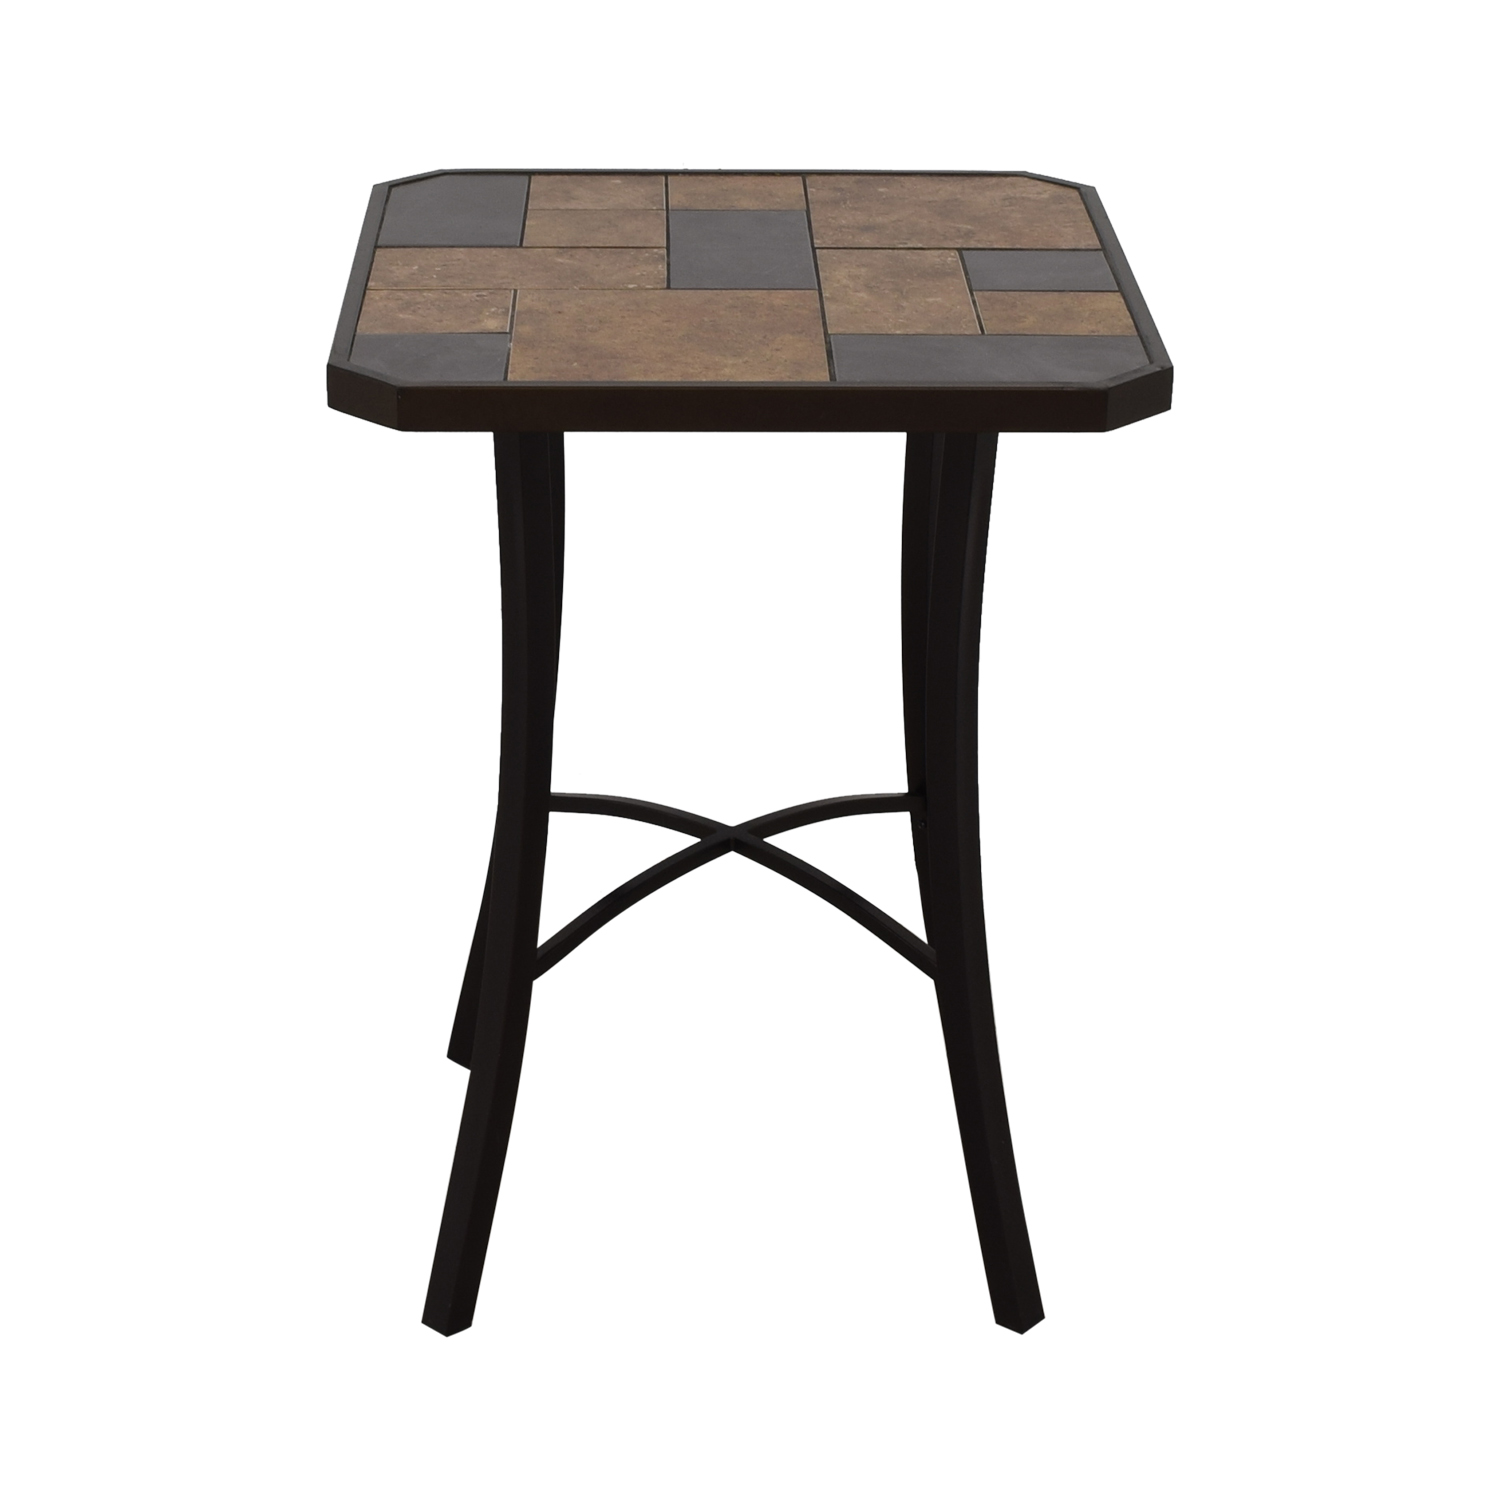 High-Top Ceramic Tile Table nj